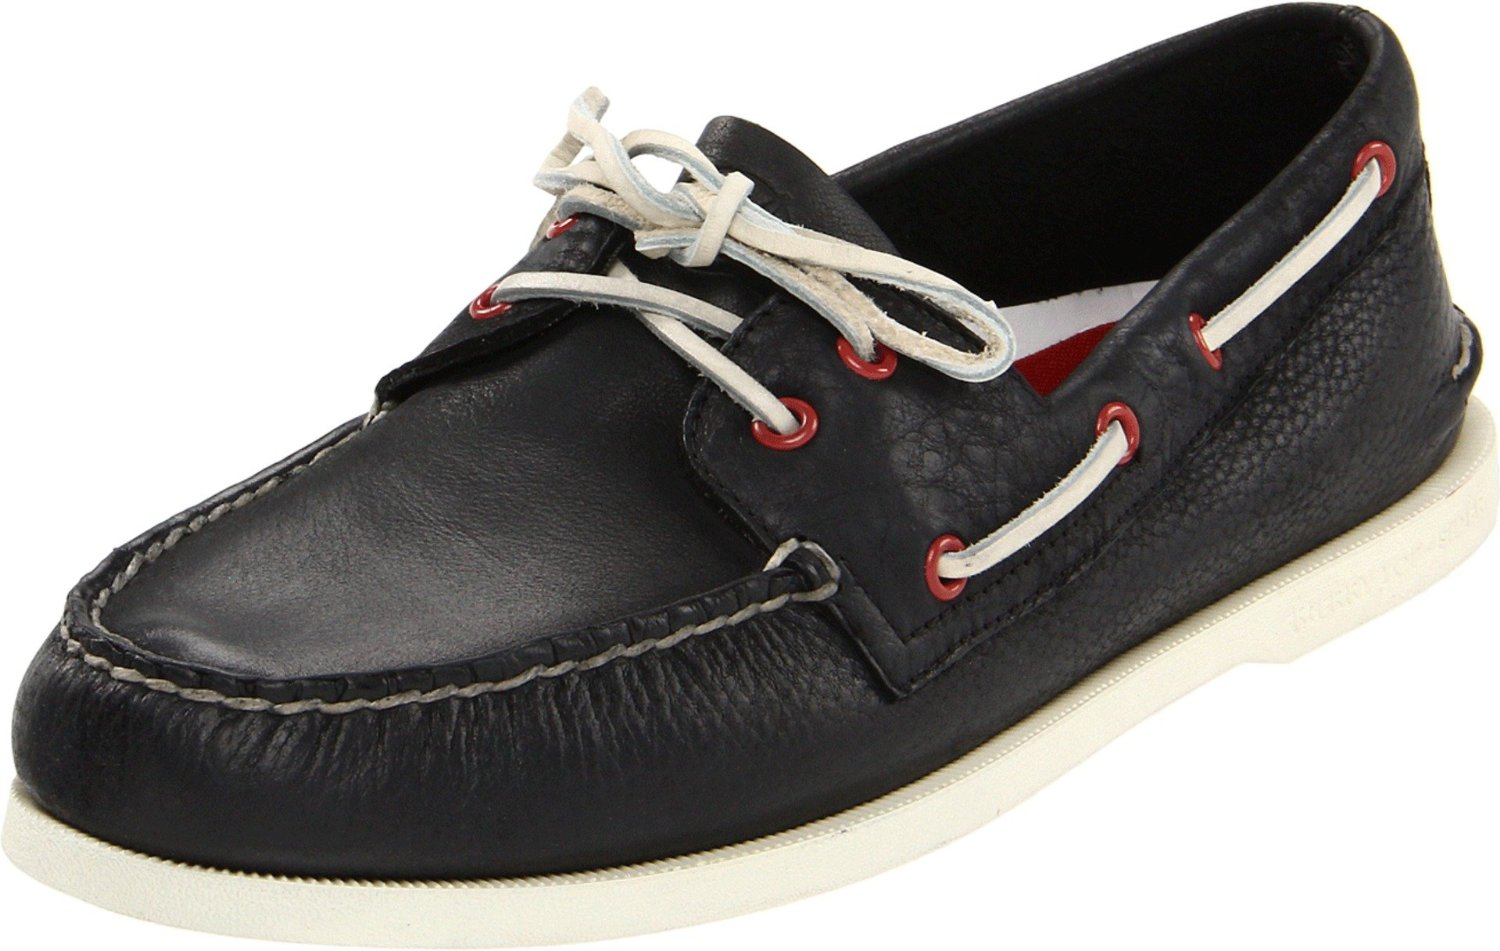 Sperry Top-sider Mens Ao 2 Eye Burnished Boat Shoe in ...